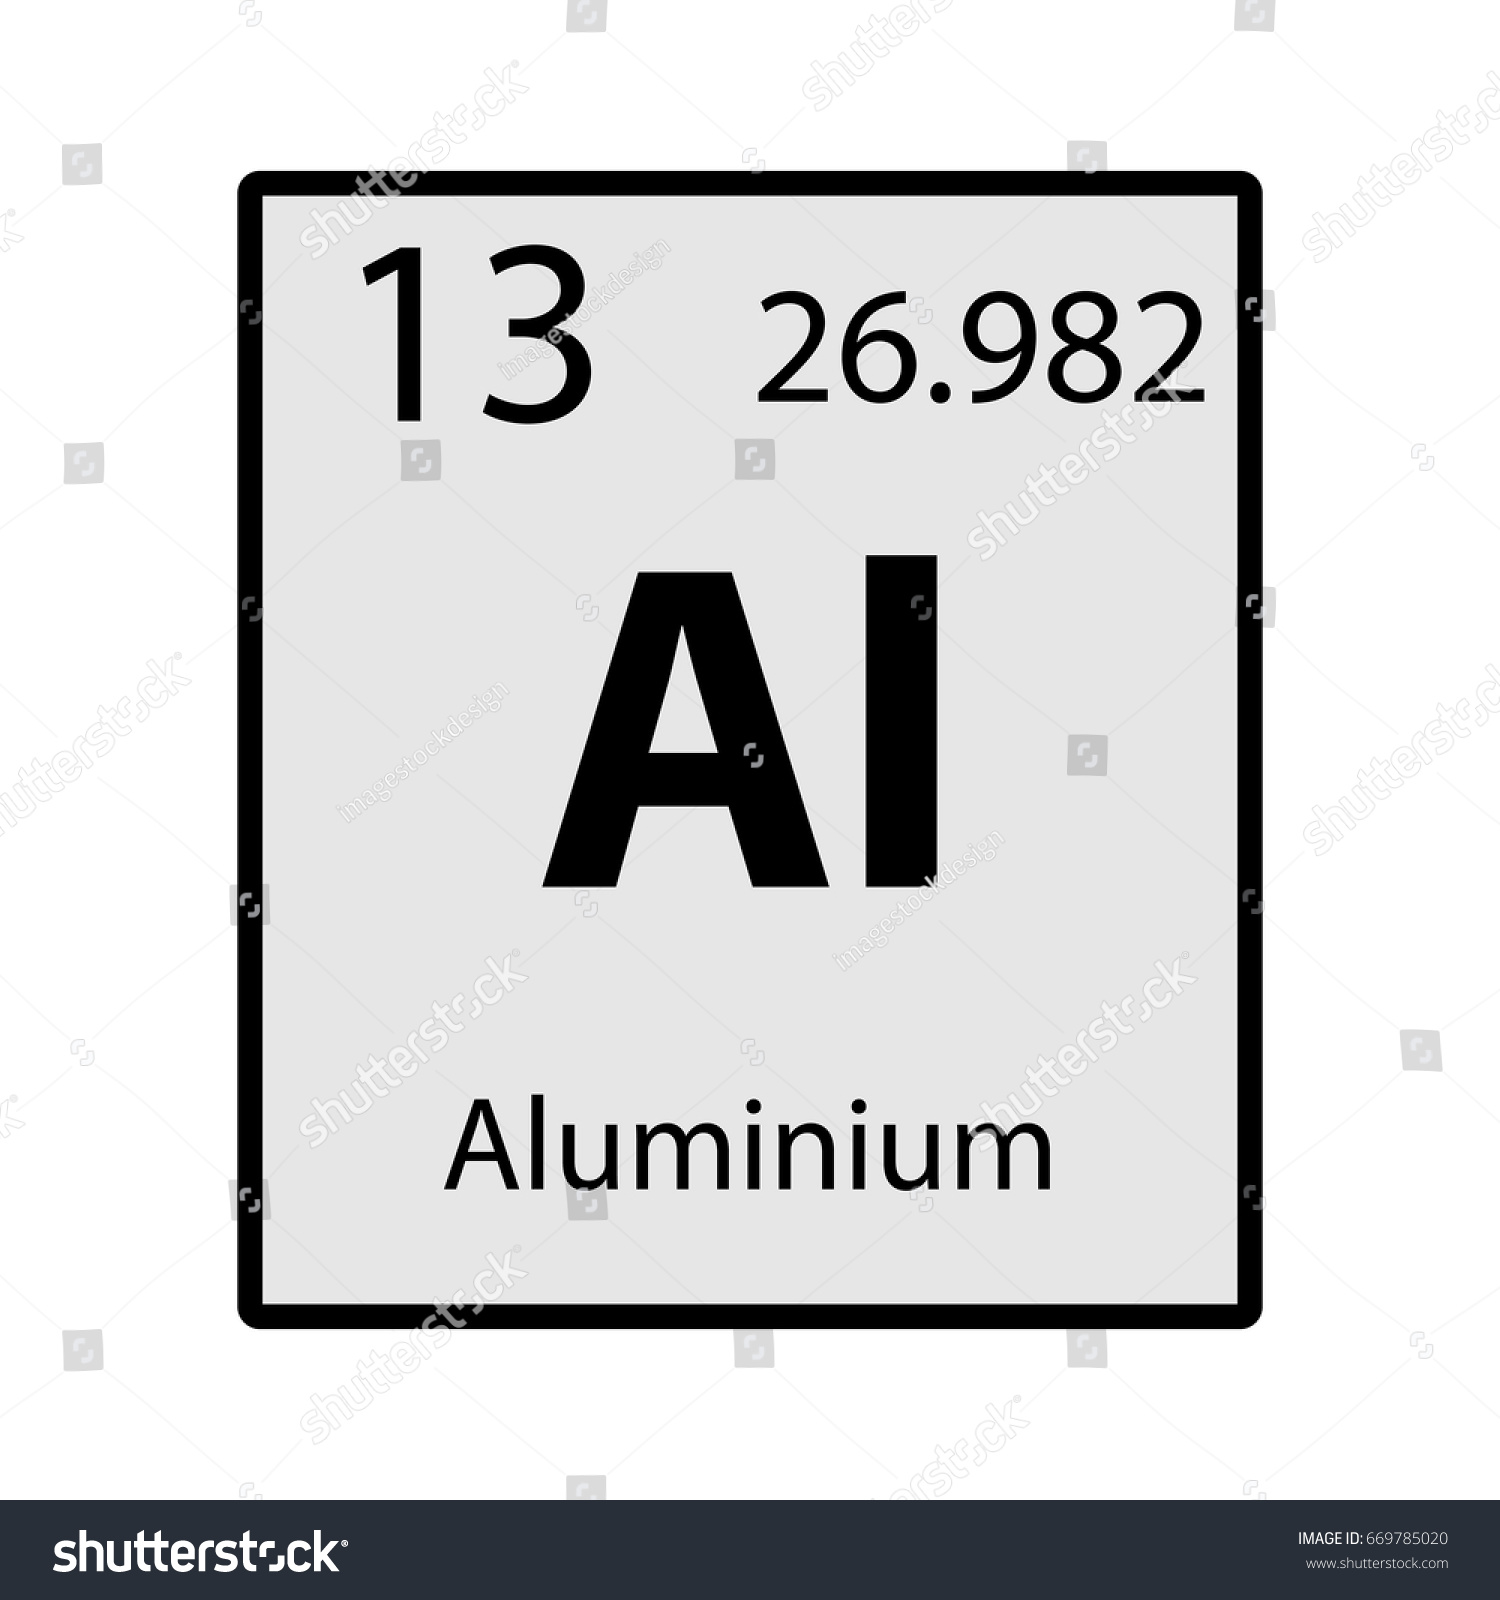 Aluminium periodic table element gray icon stock vector 669785020 aluminium periodic table element gray icon on white background vector gamestrikefo Image collections